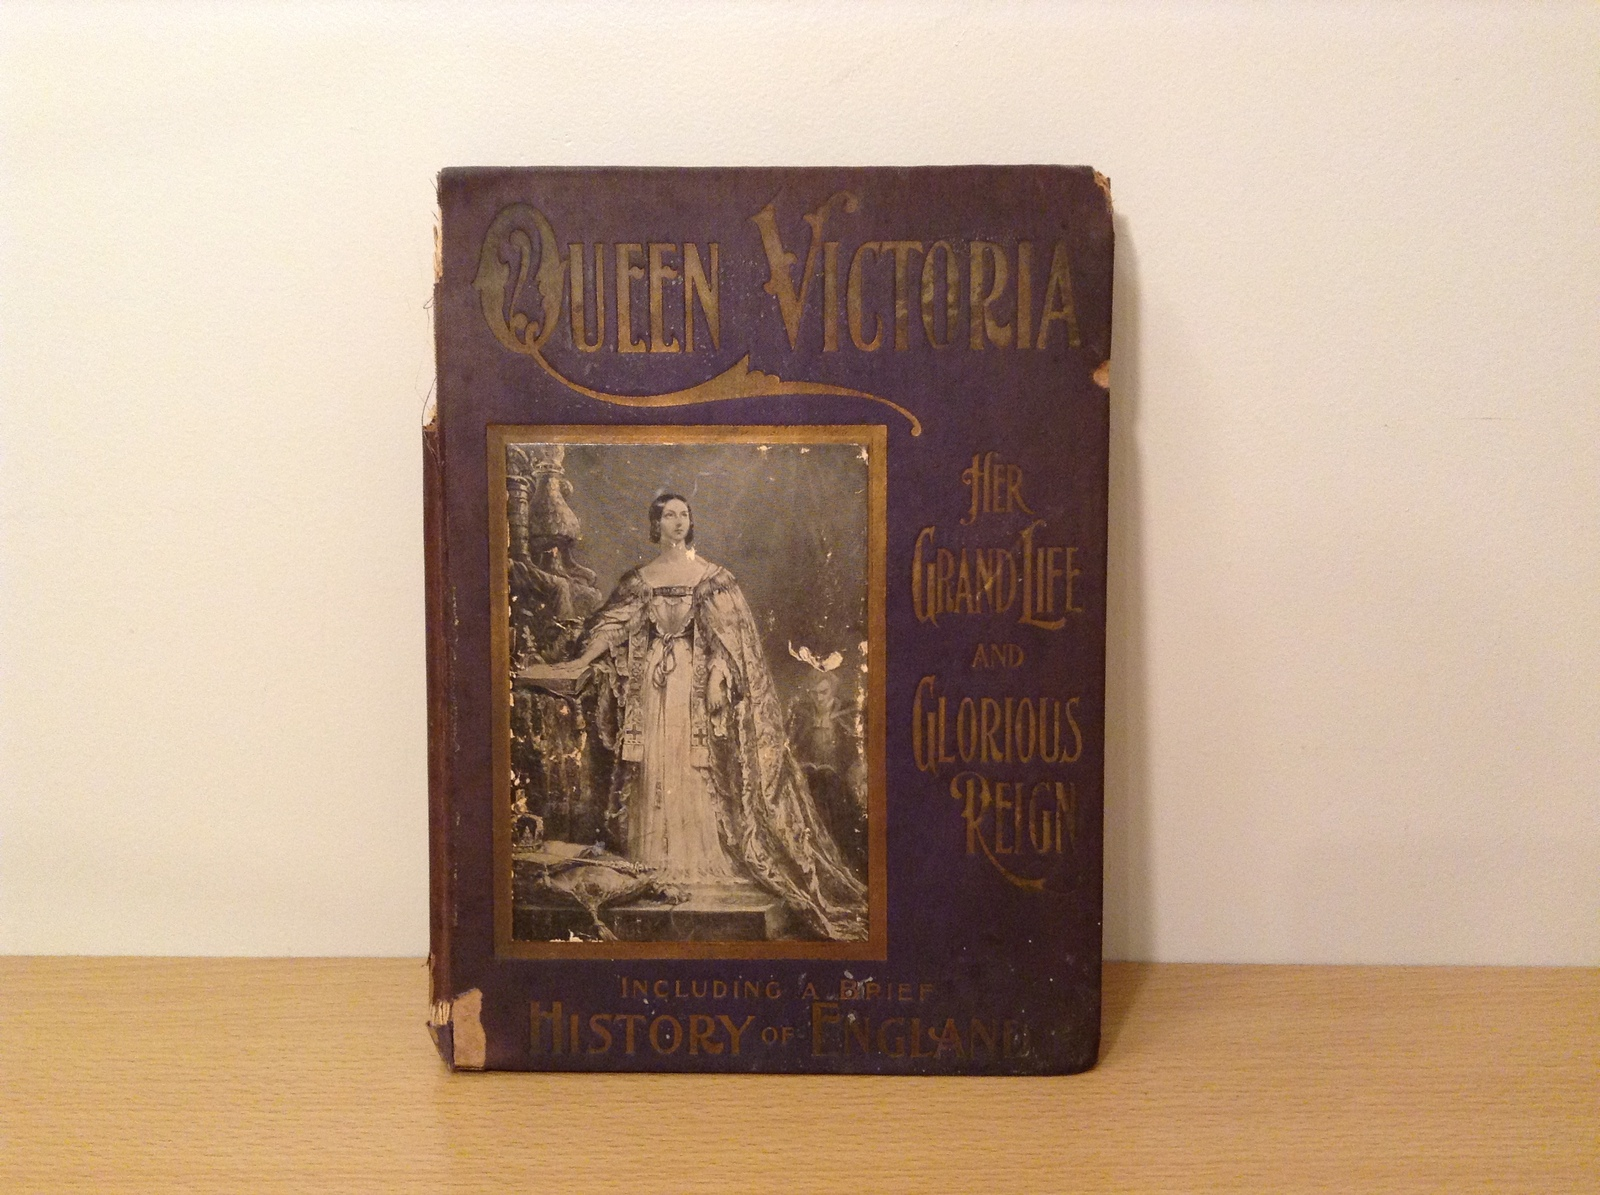 Vintage Book Queen Victoria Her Grand Life and Glorious Reign History of England